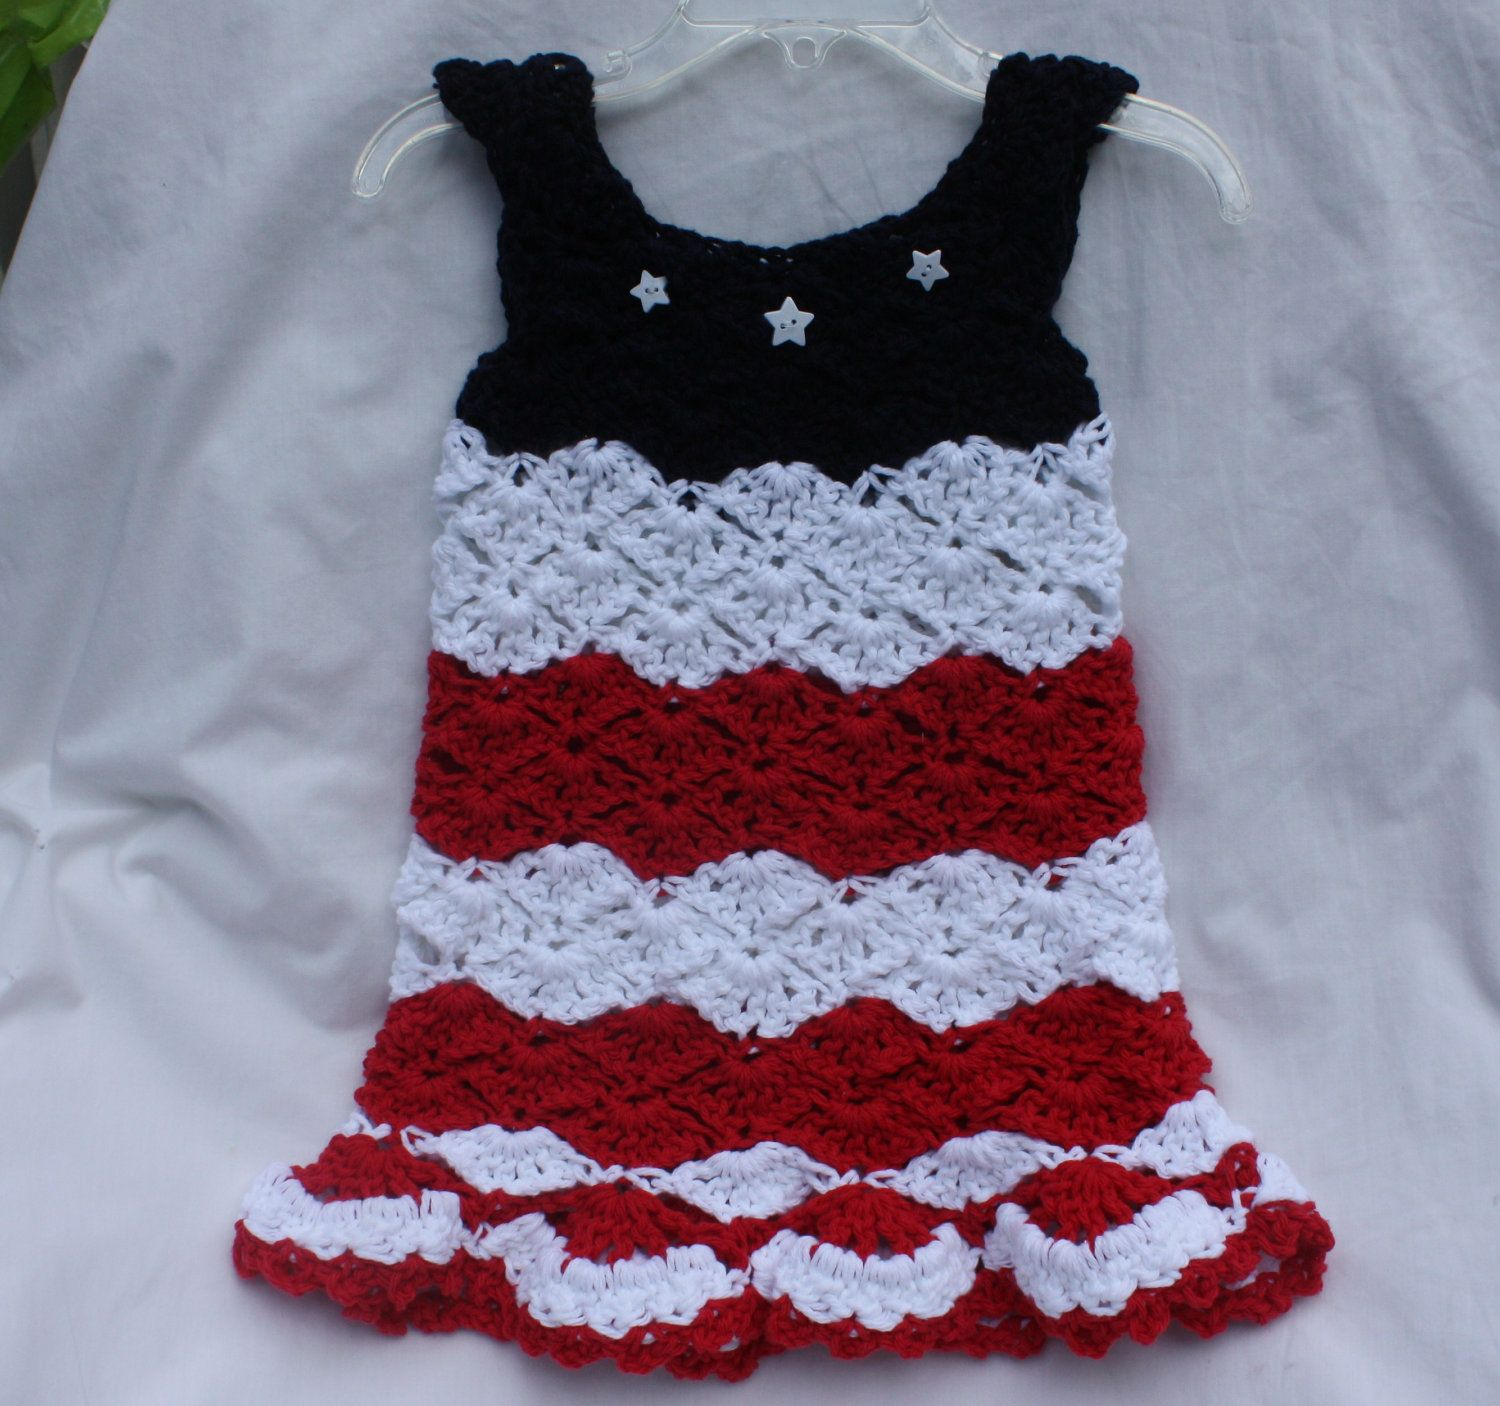 4th of July crocheted baby girl dress patriotic